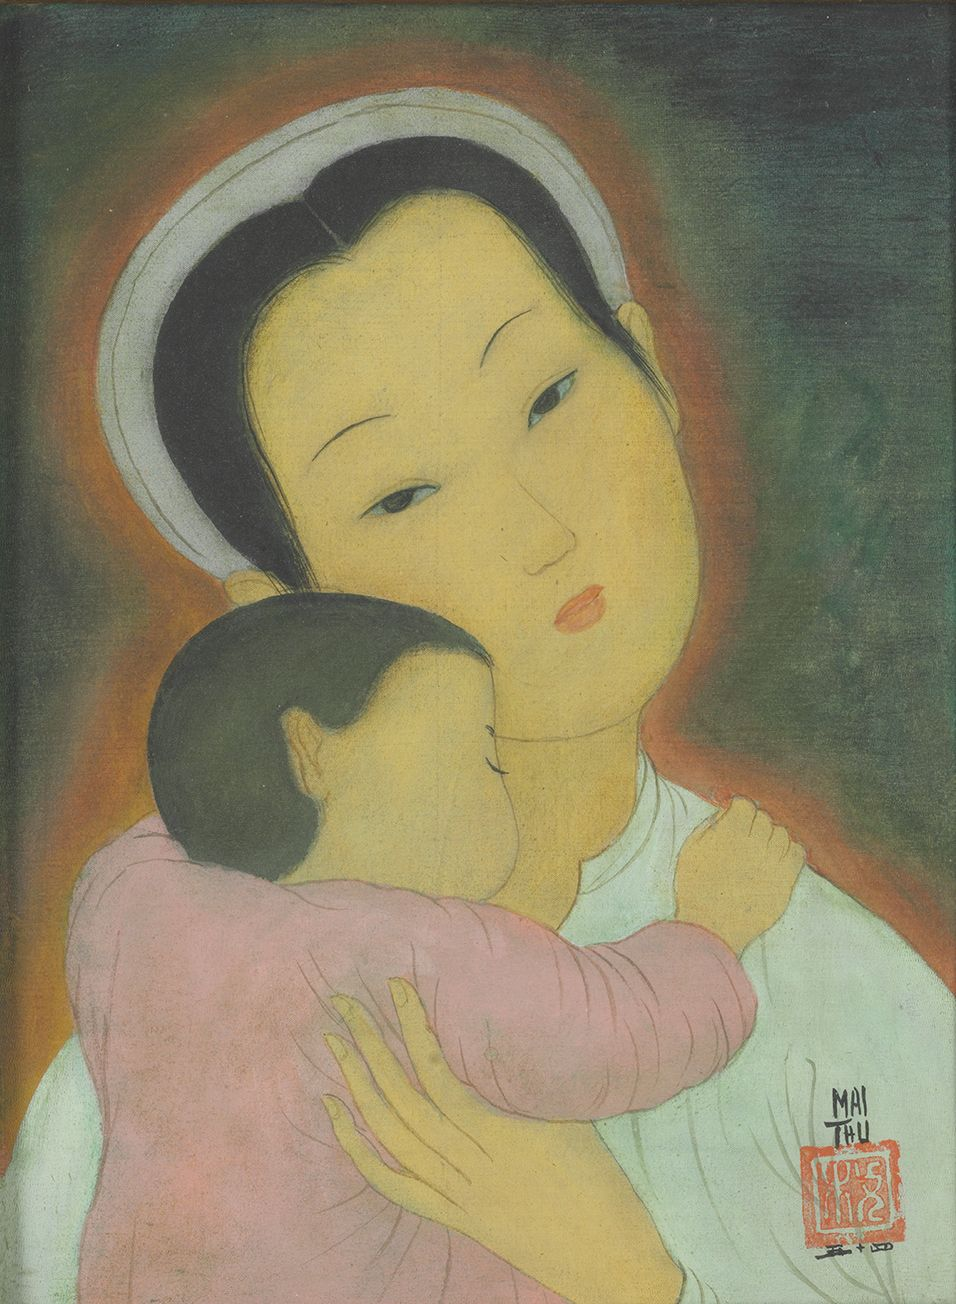 Mai Trung Thu, Woman With Child, watercolour and gouache on silk, 24 x 18 cm, 1954.jpeg